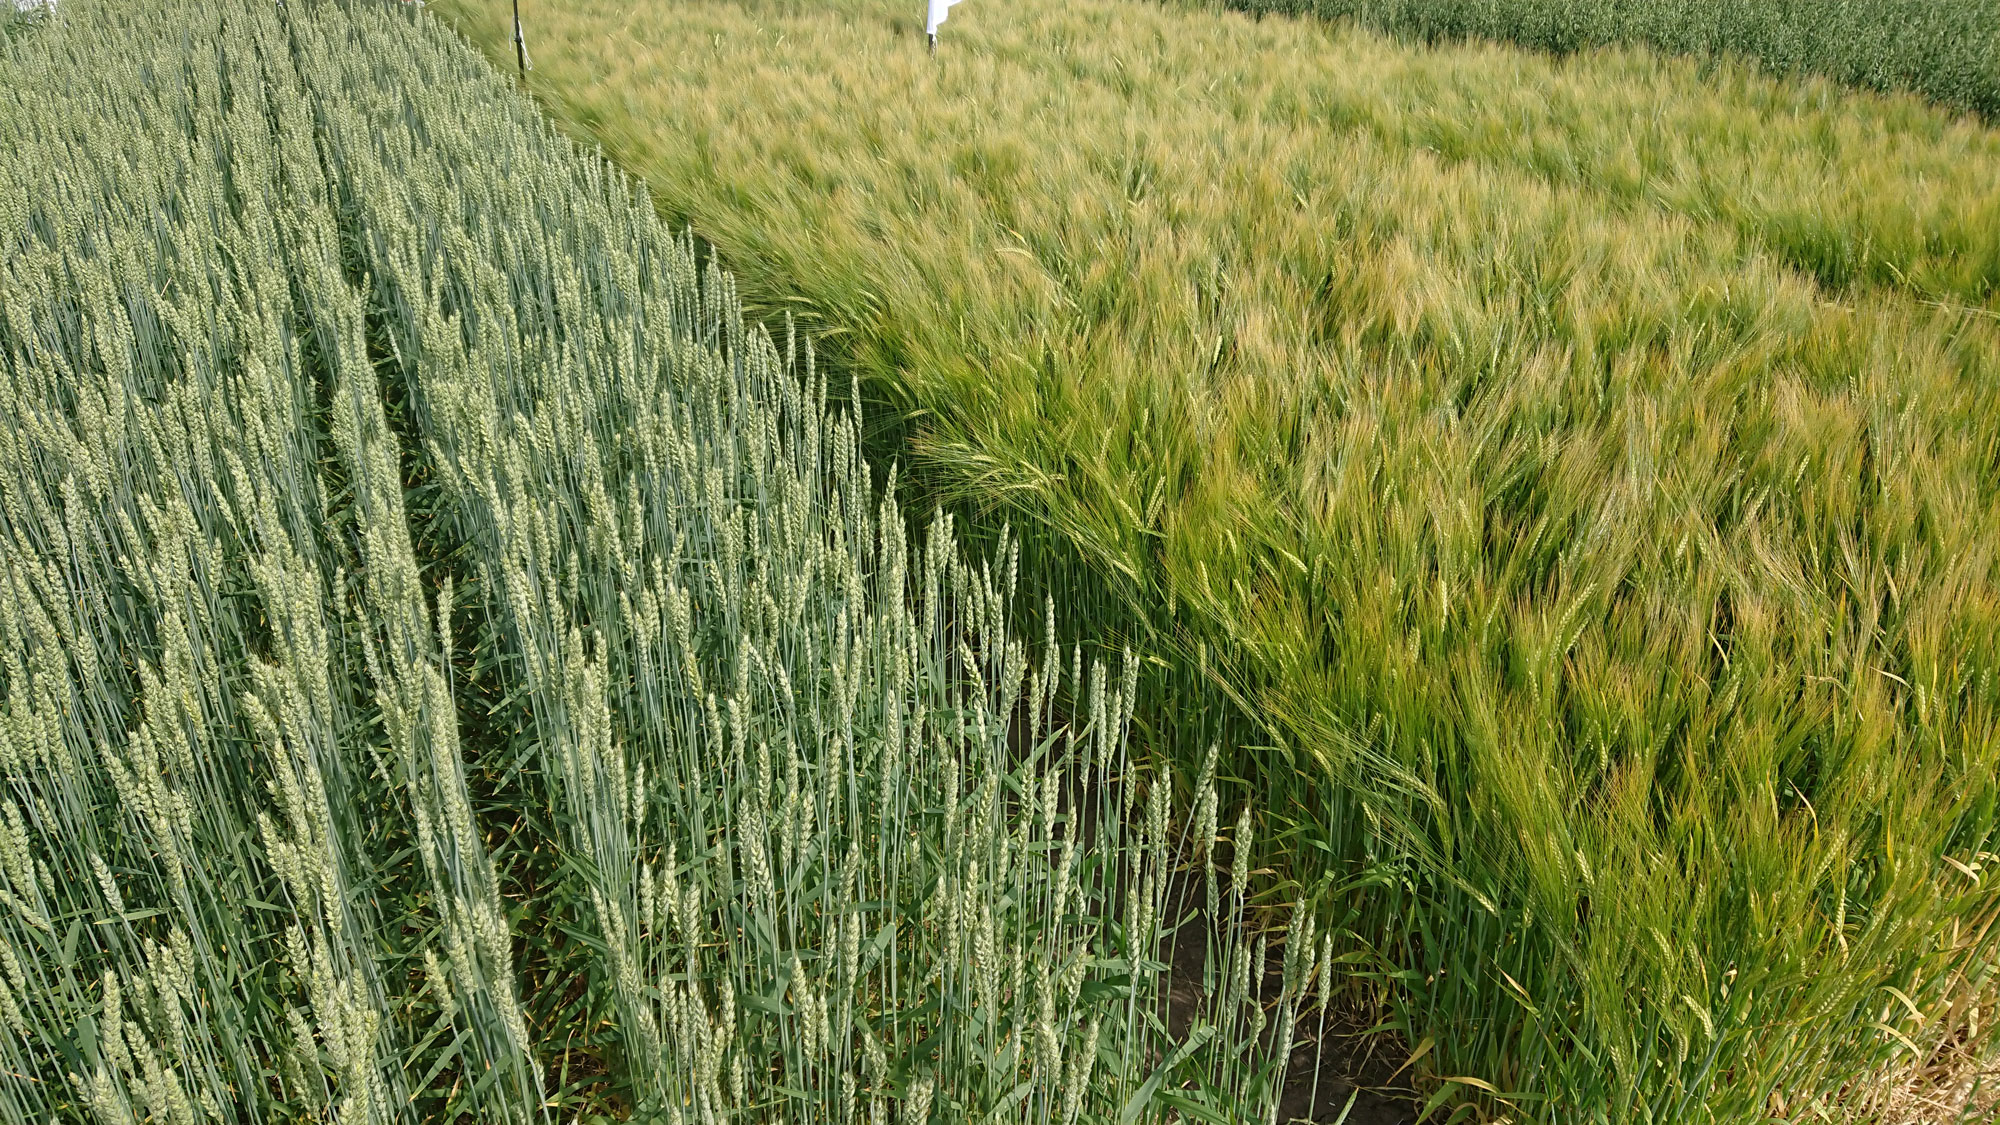 arable land with two different kinds of cereals